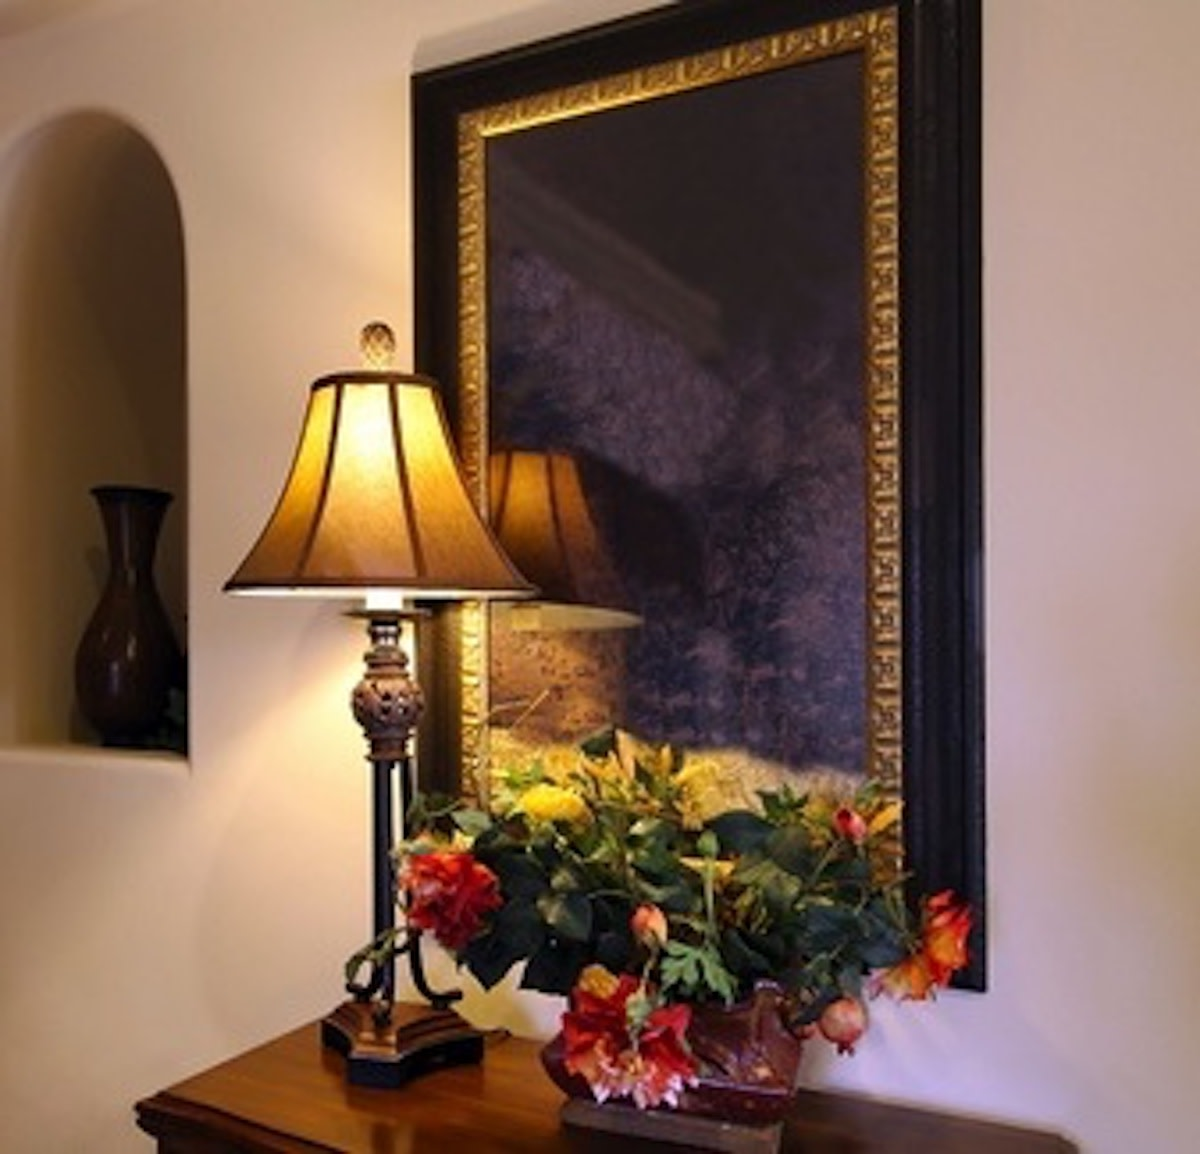 ten-biggest-decorating-mistakes-and-how-to-avoid-them